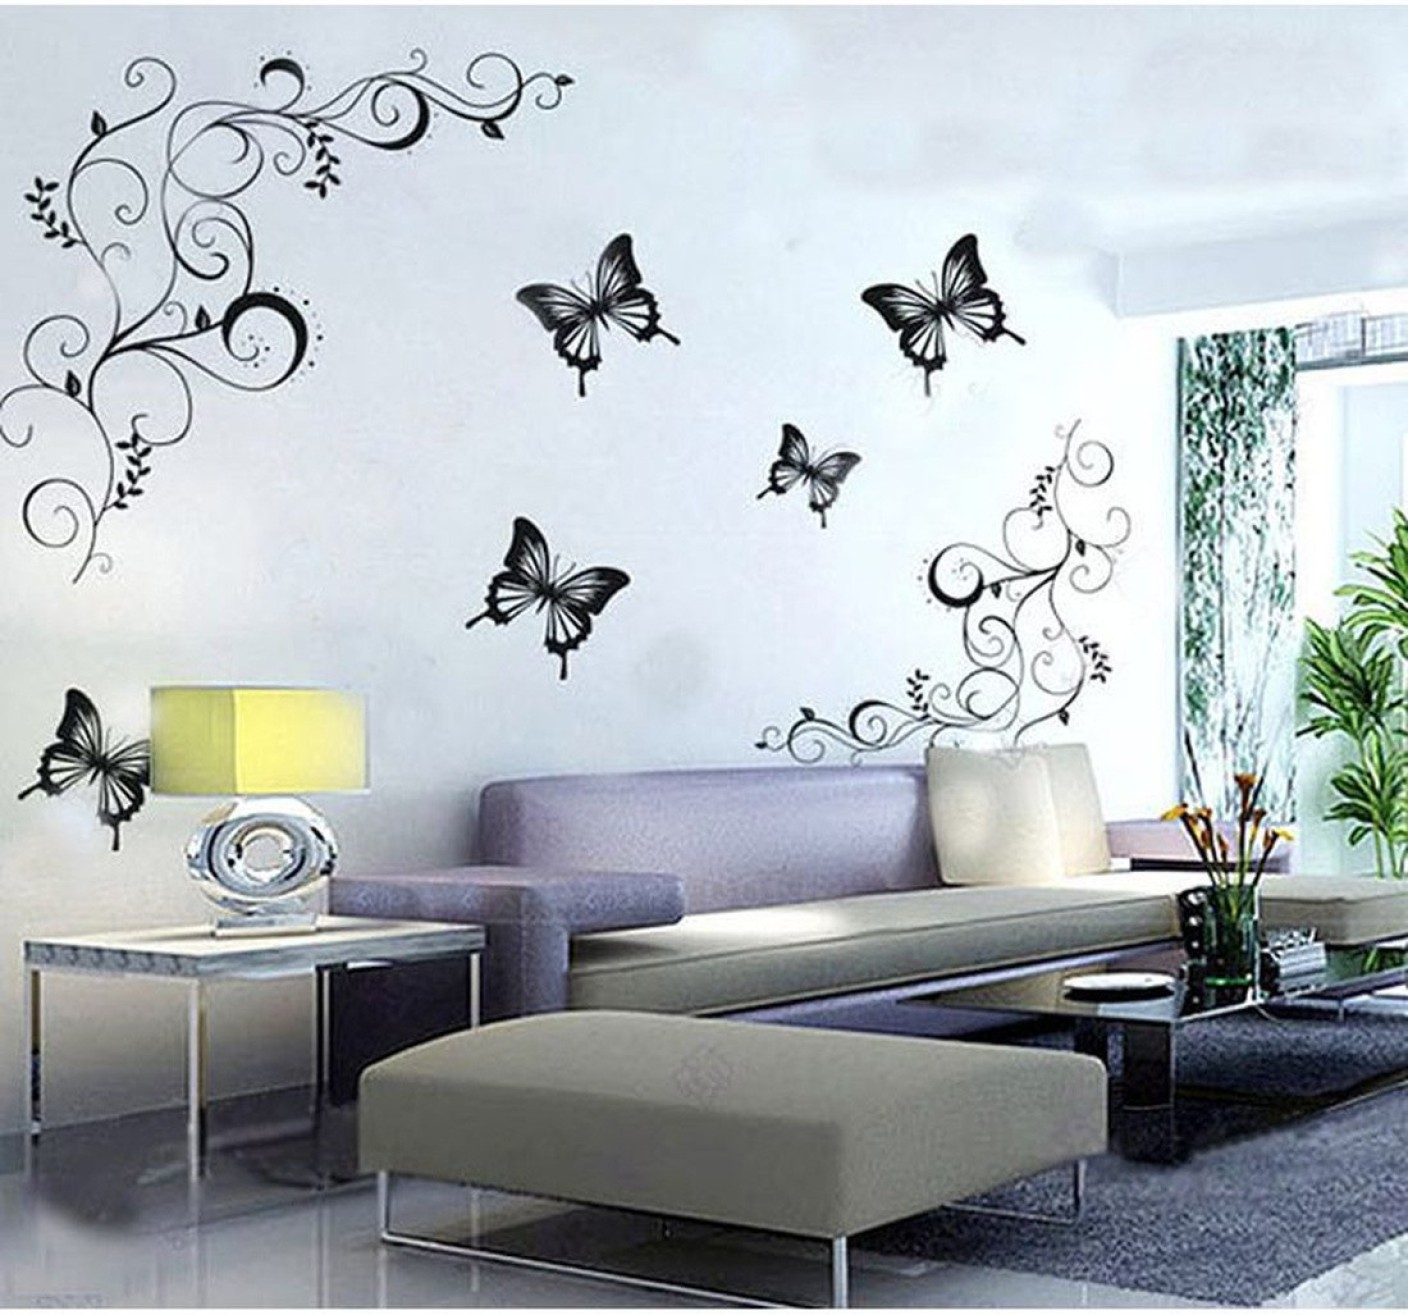 Happy Walls Artistic Vines With Butterflies Price In India